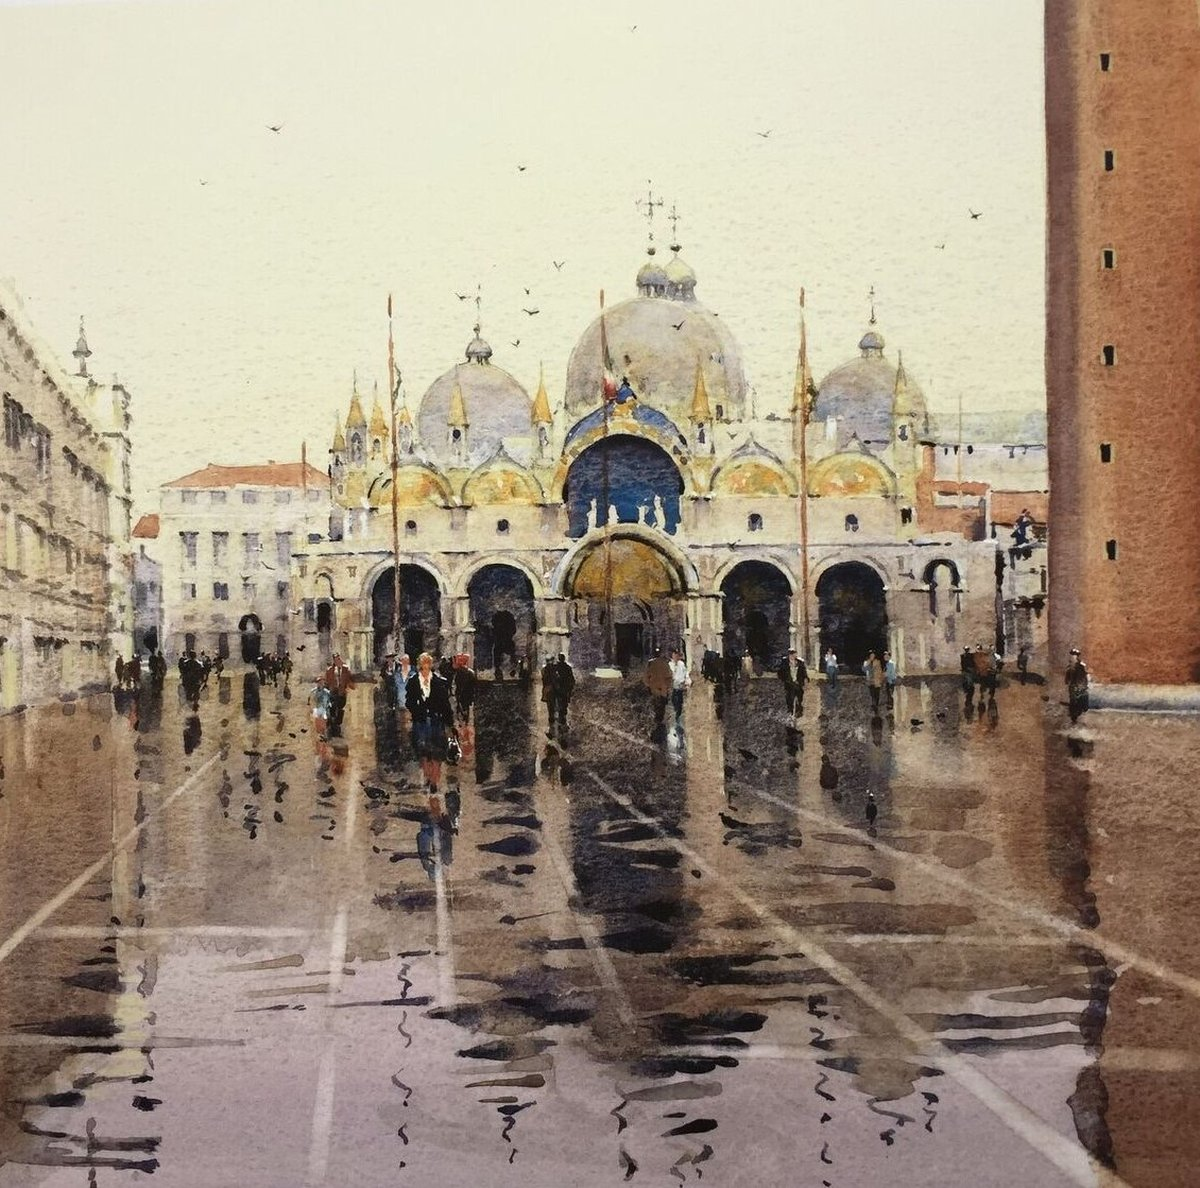 image showing Piazza San Marco in the Rain: Watercolour